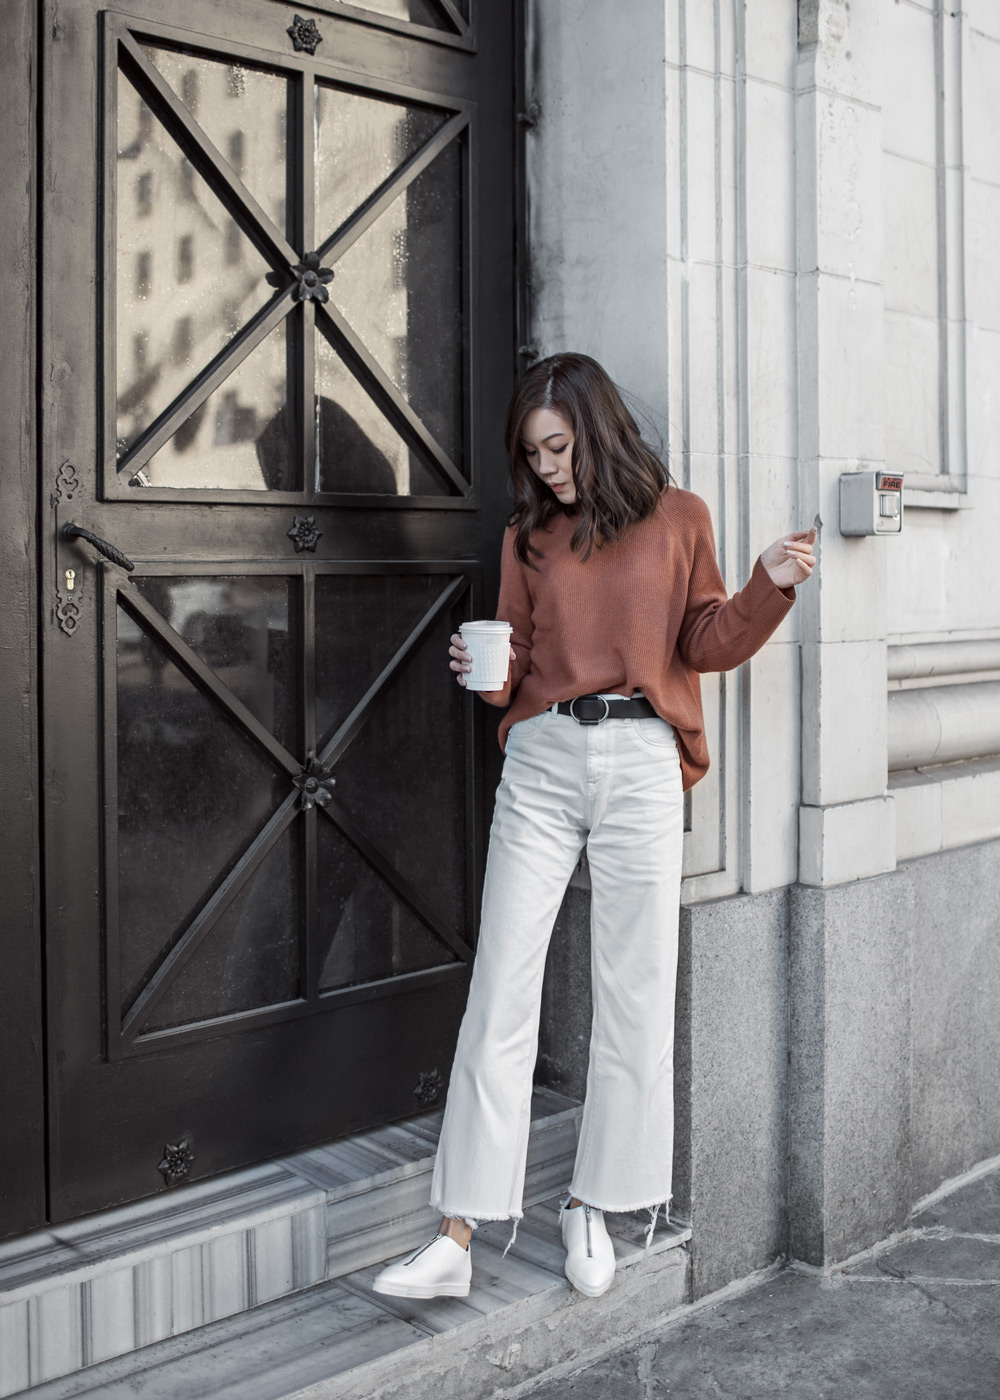 Vince High Crew, Vince, Cinnamon Sweater, DL1961 Wide Leg Jeans, DL1961, White Jeans, Stella McCartney Sneakers